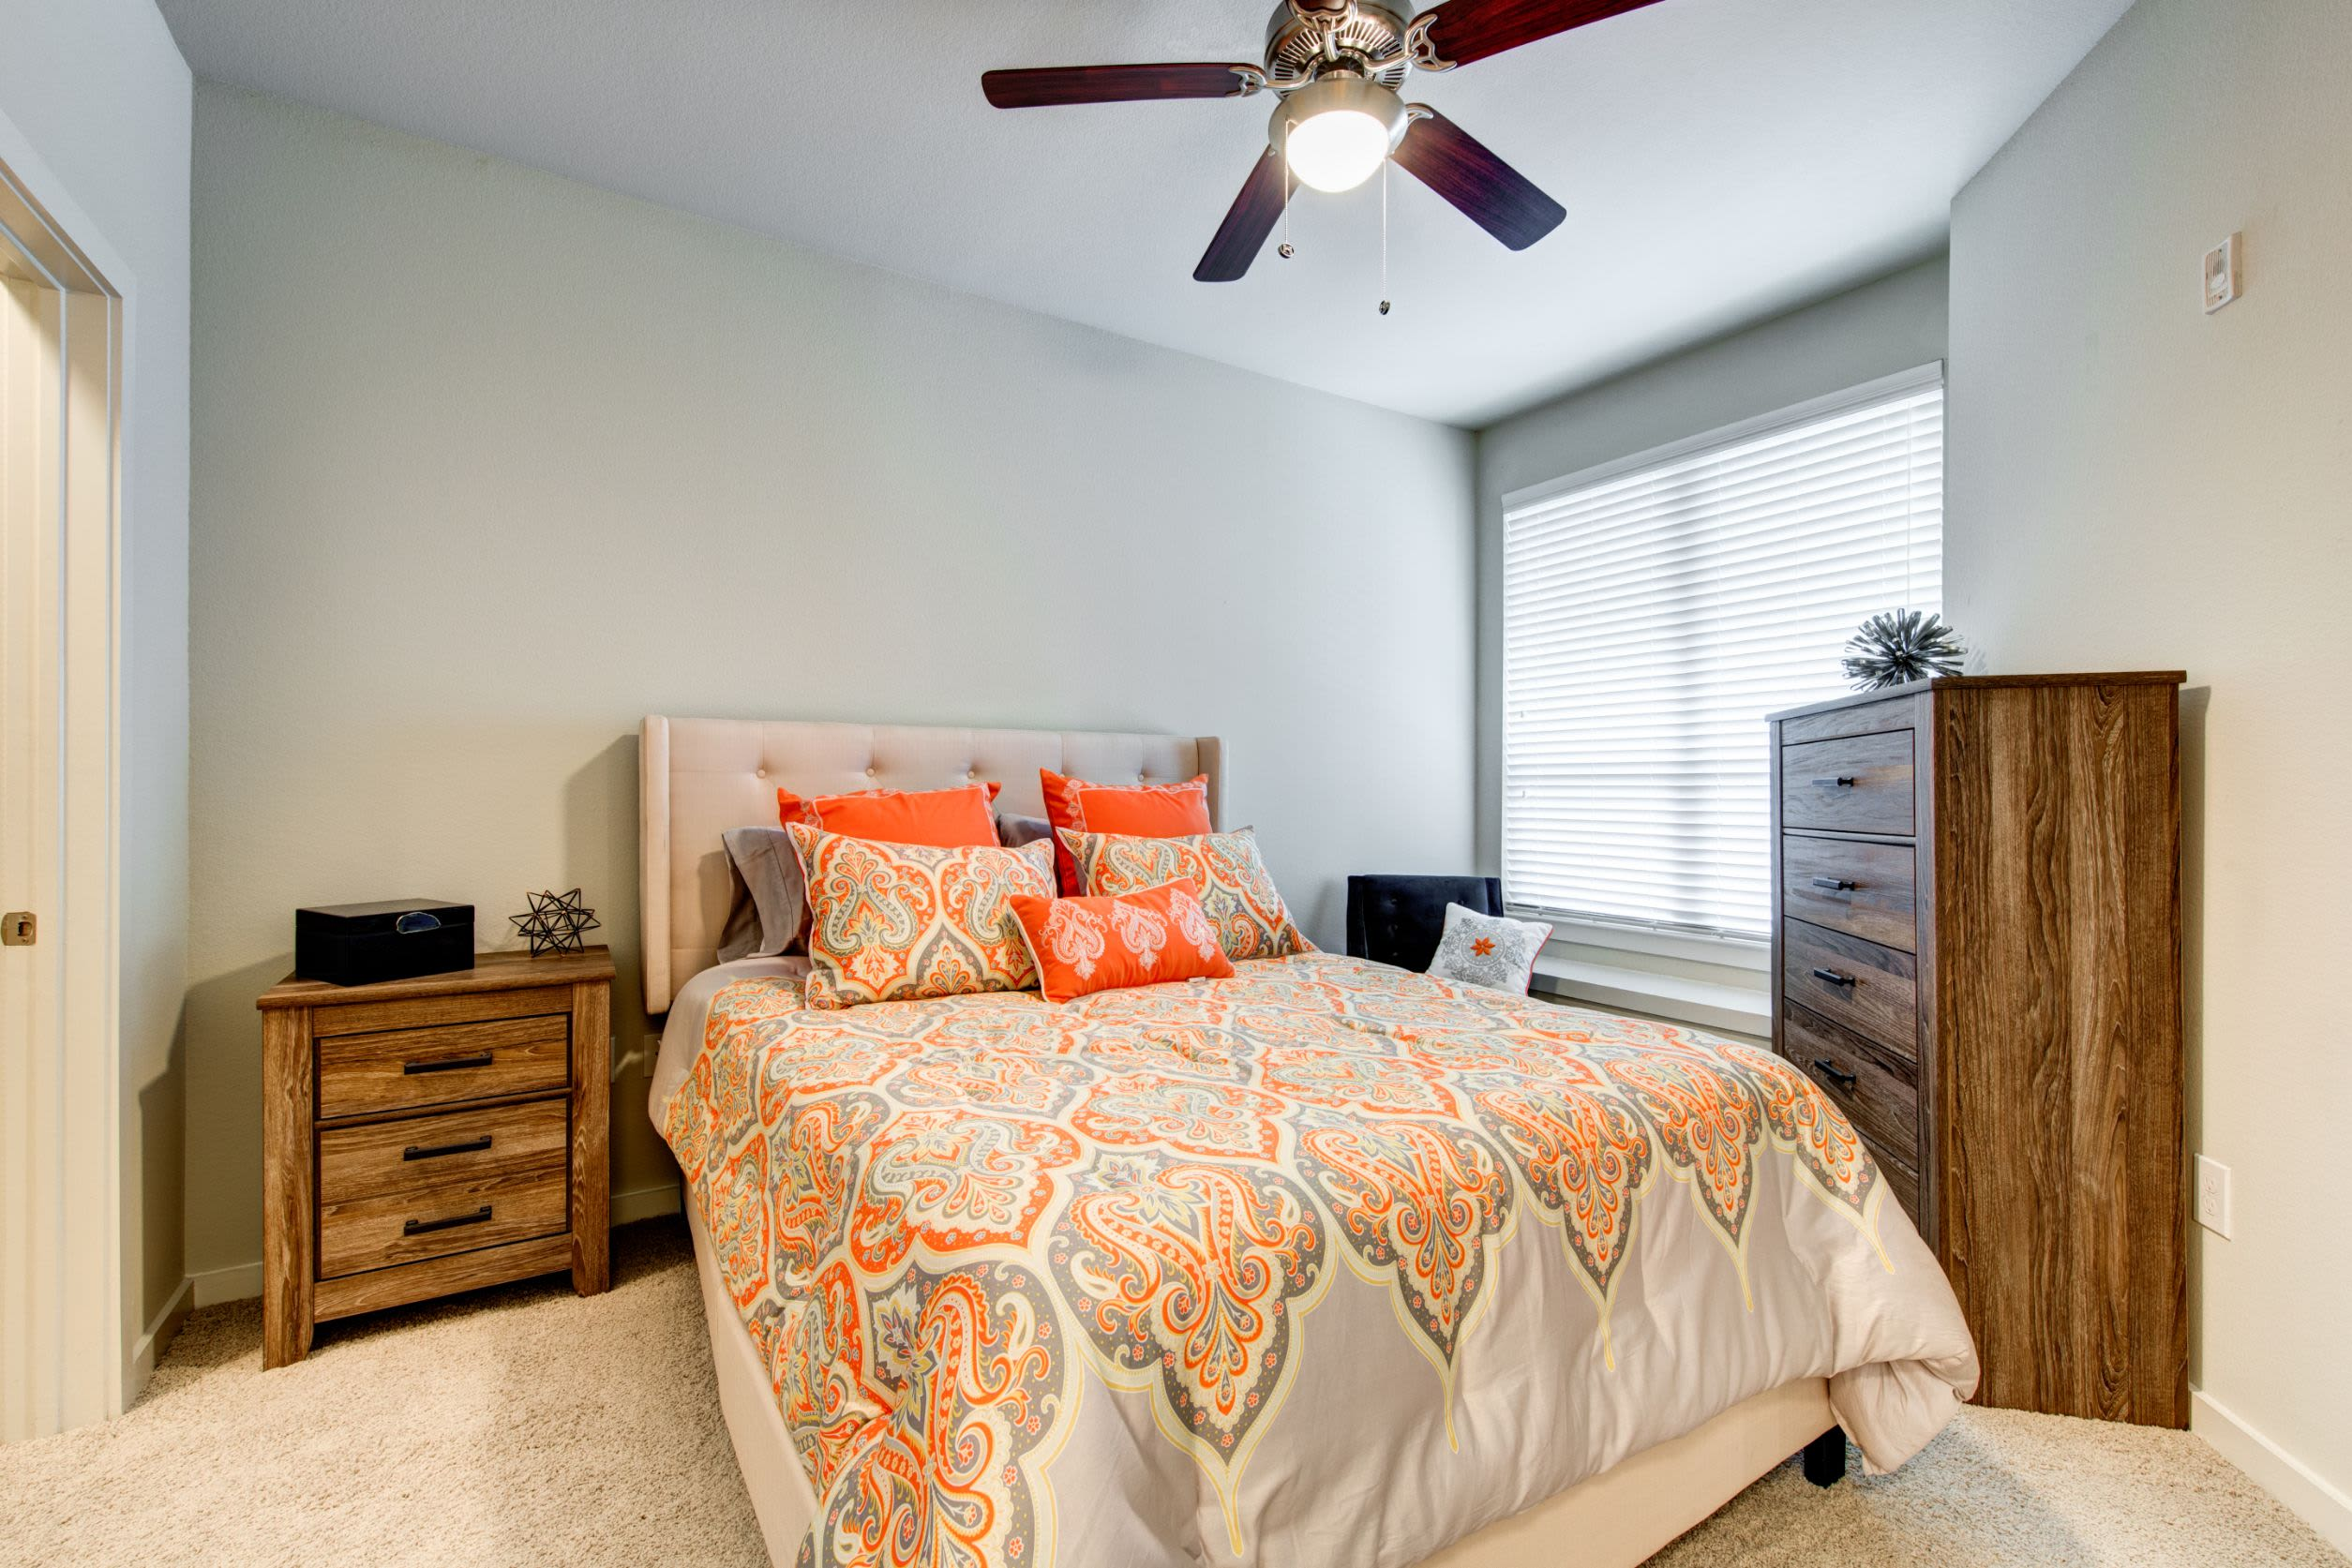 Spacious bedroom with a ceiling fan at The Marq on West 7th in Fort Worth, Texas